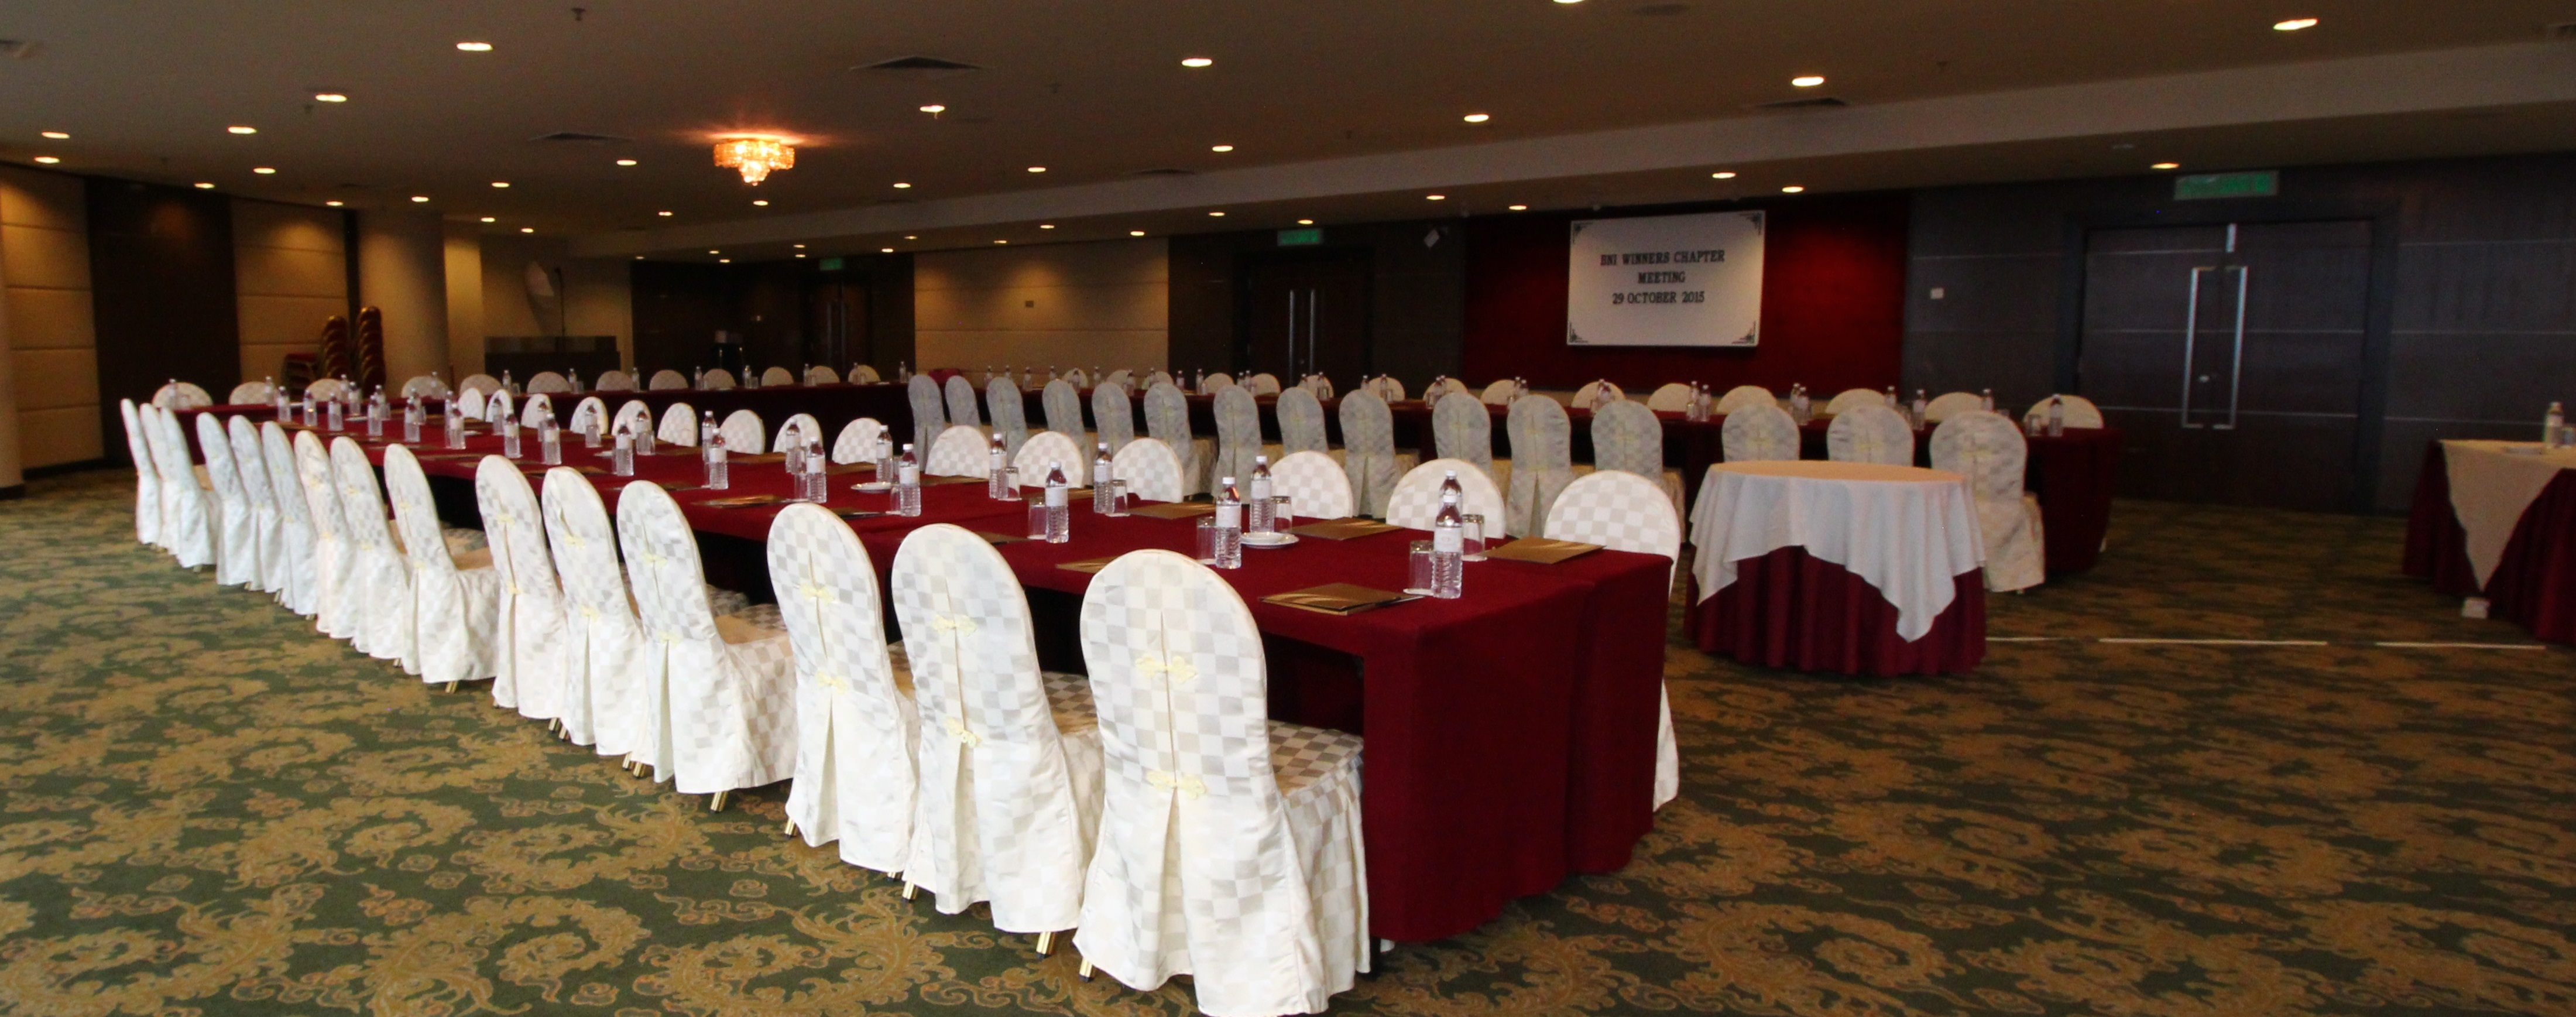 grand_paragon_hotel_classroom_-style-jpg